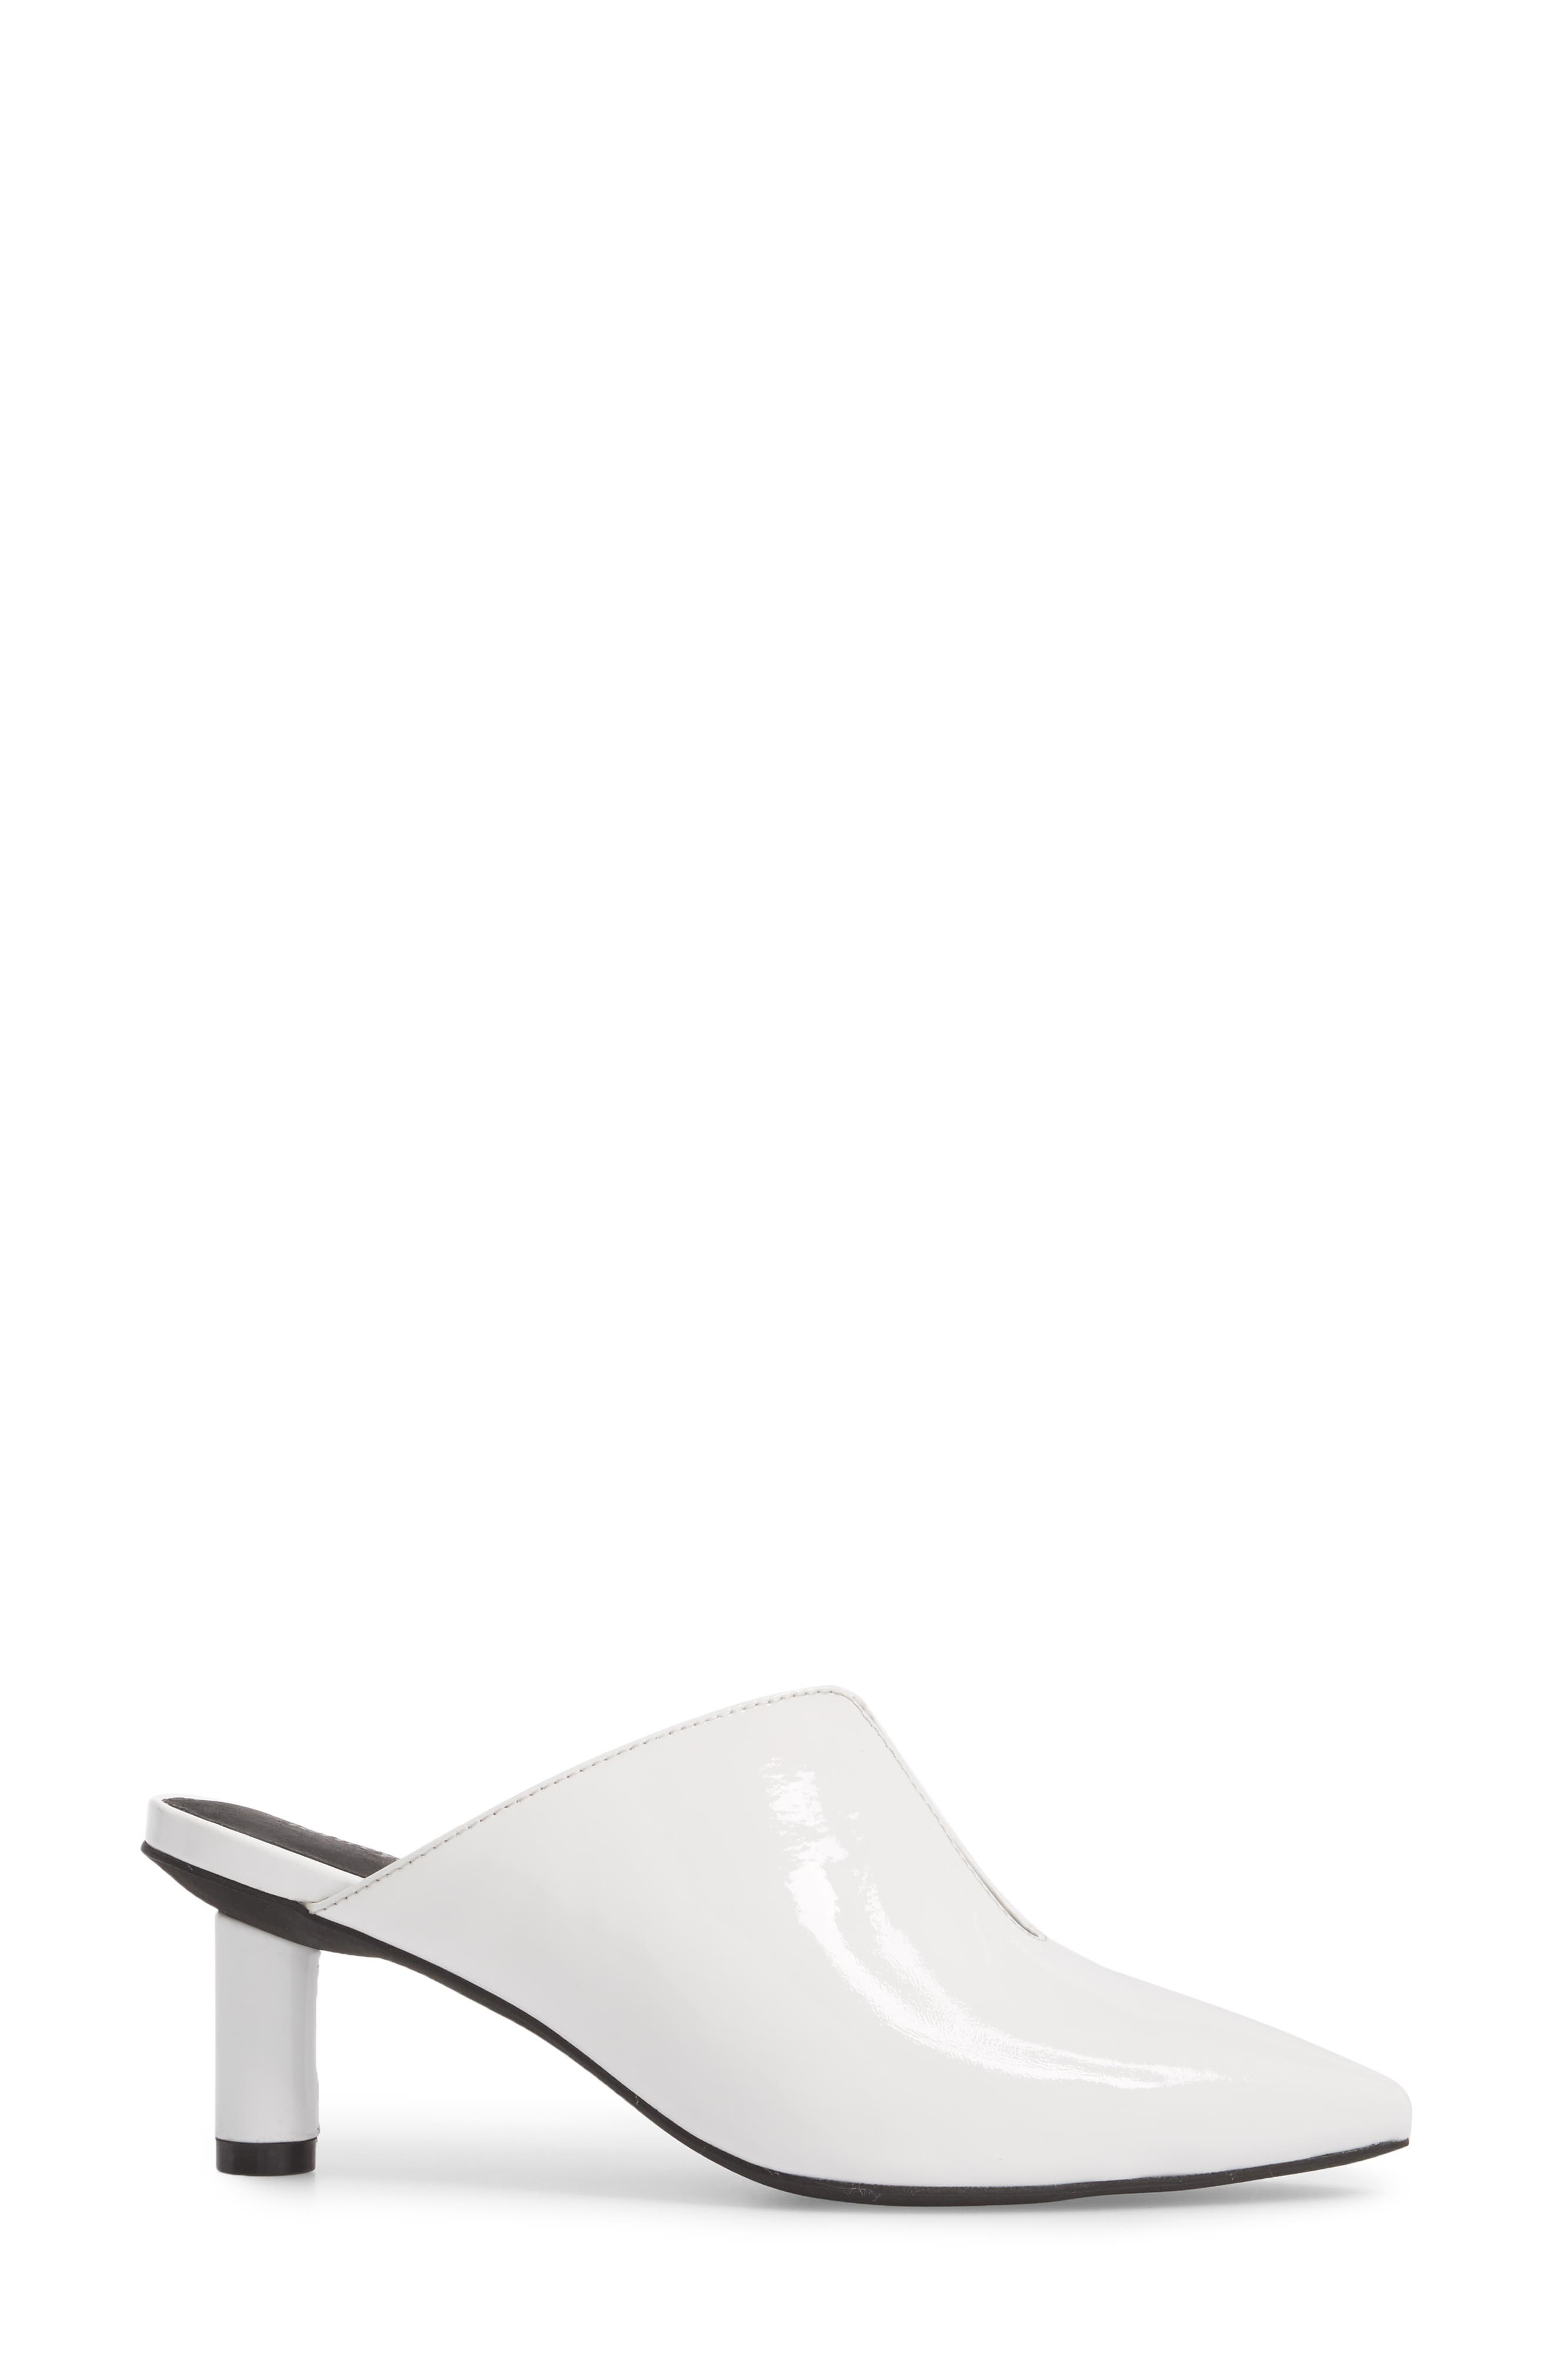 Saltaire Pointy Toe Mule,                             Alternate thumbnail 3, color,                             White Patent Leather